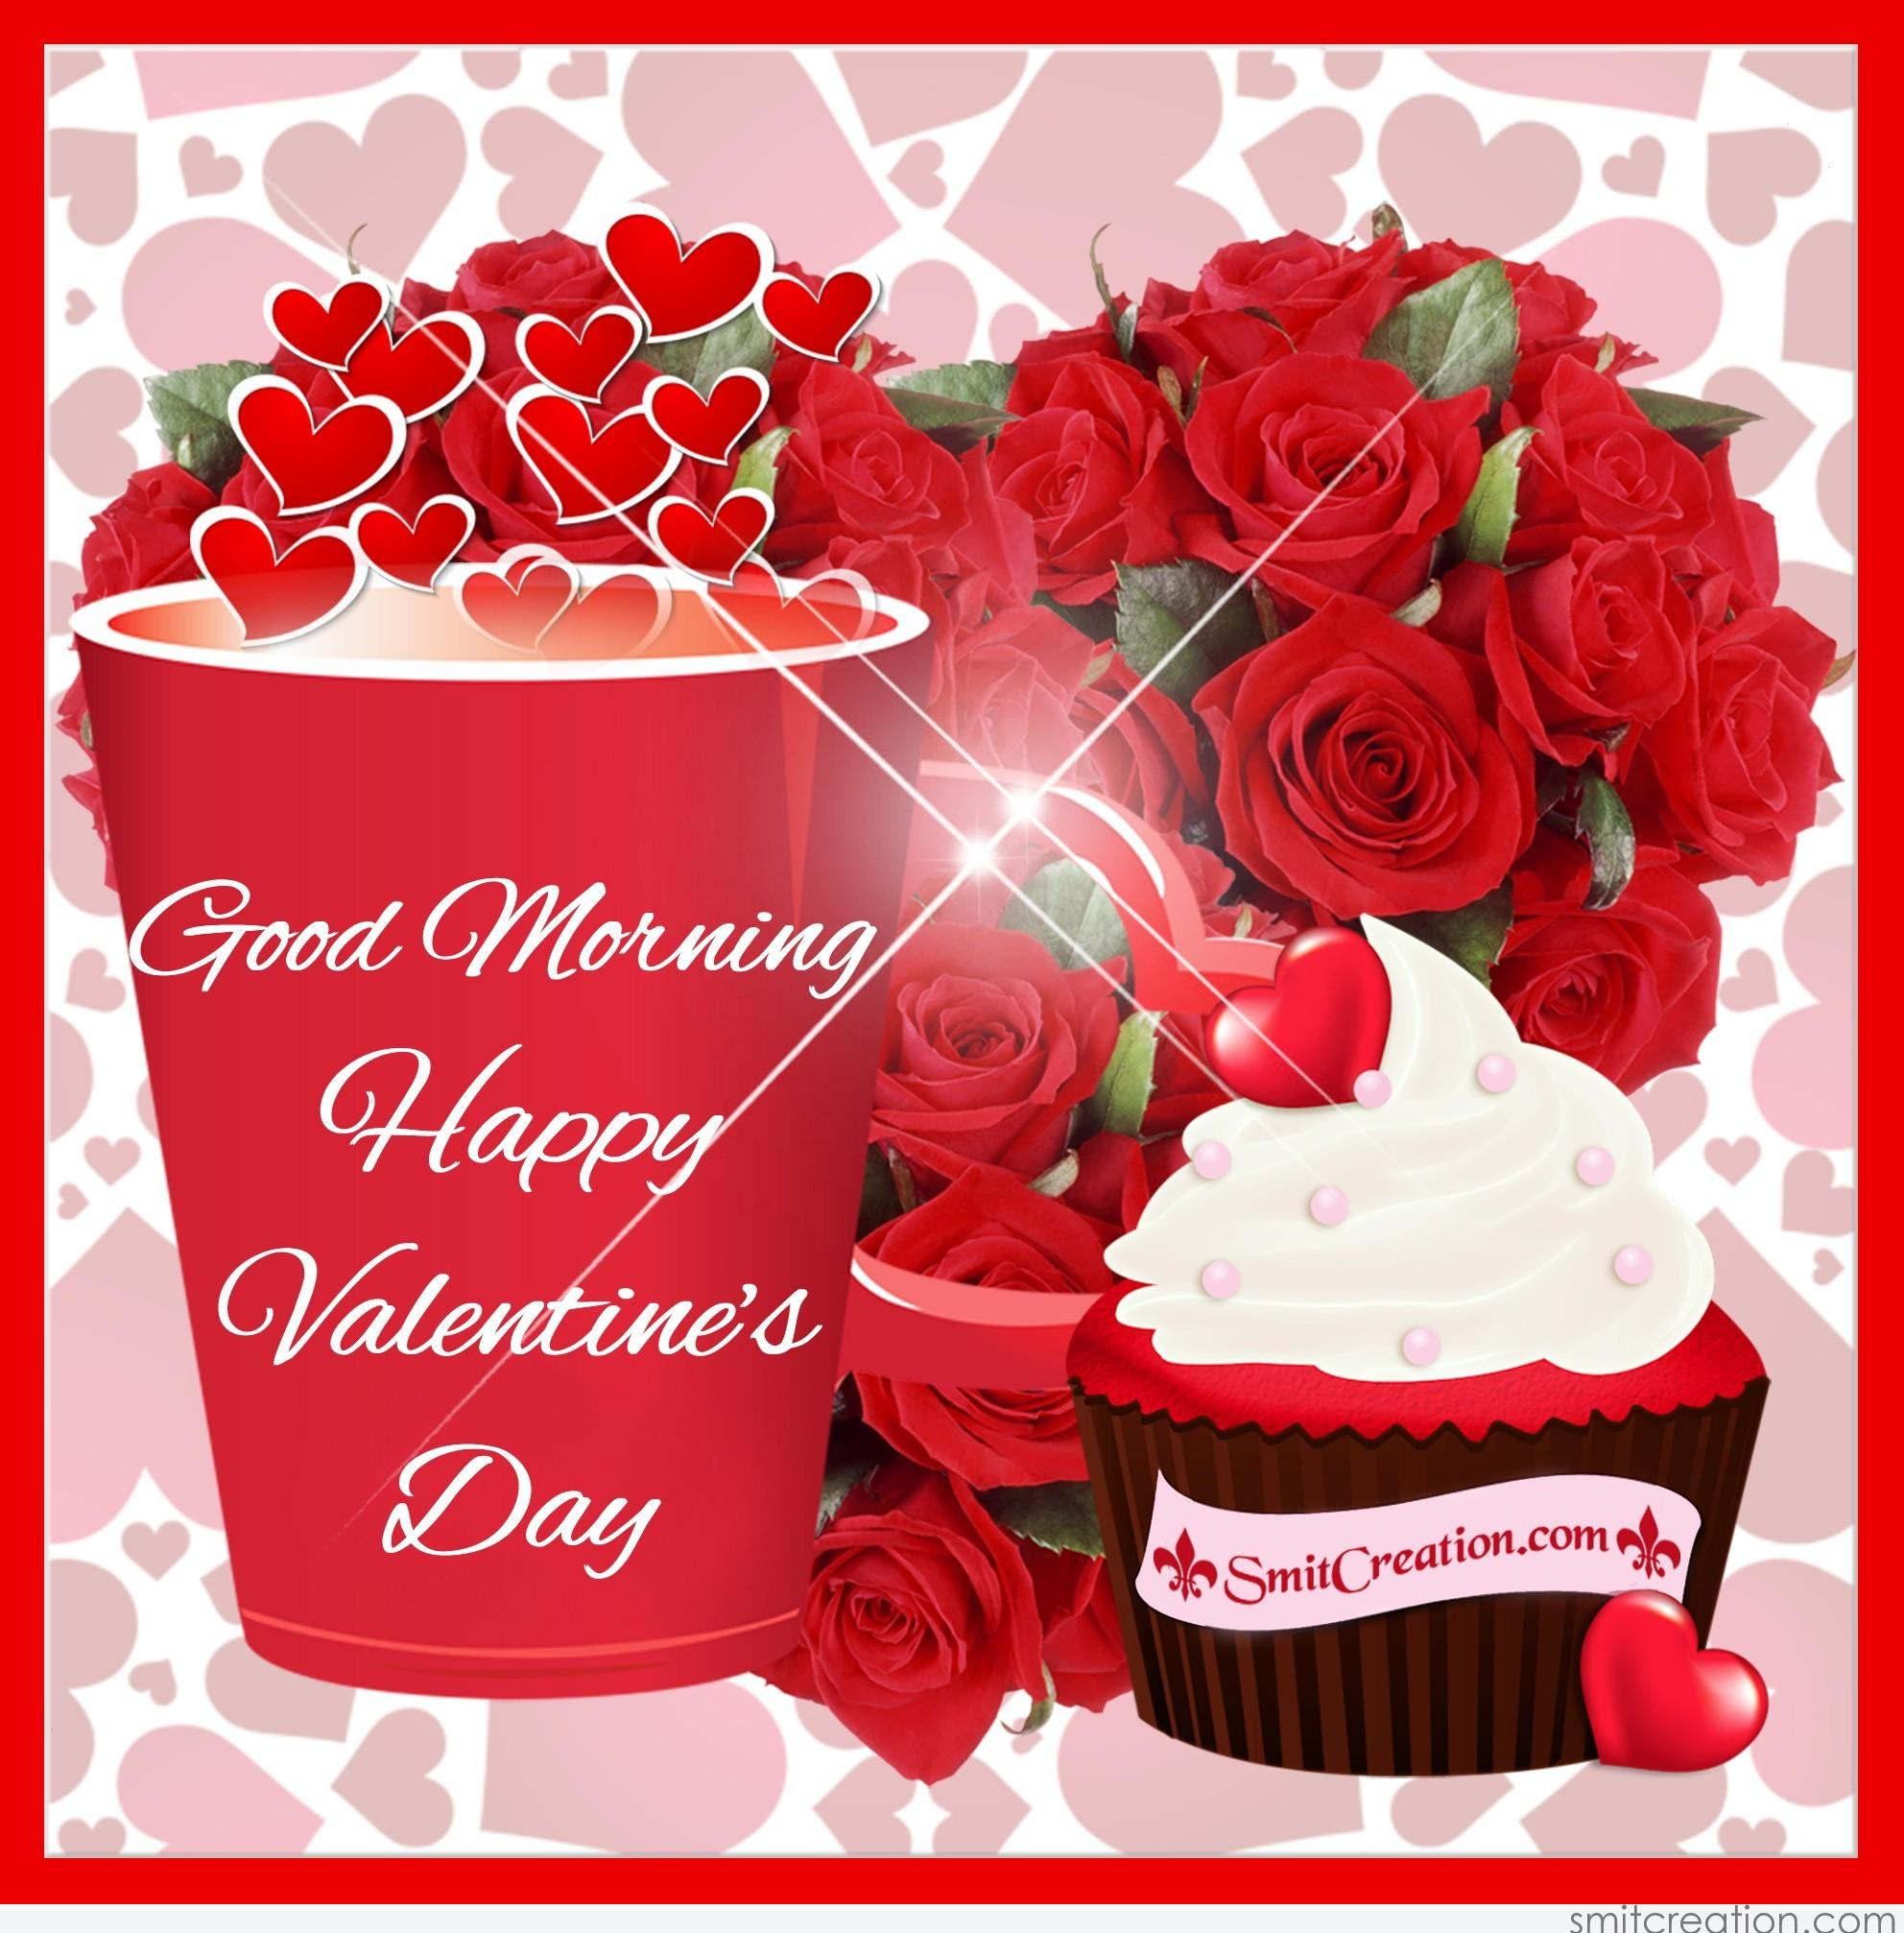 Good Morning Love Pictures And Graphics Smitcreation Page 4